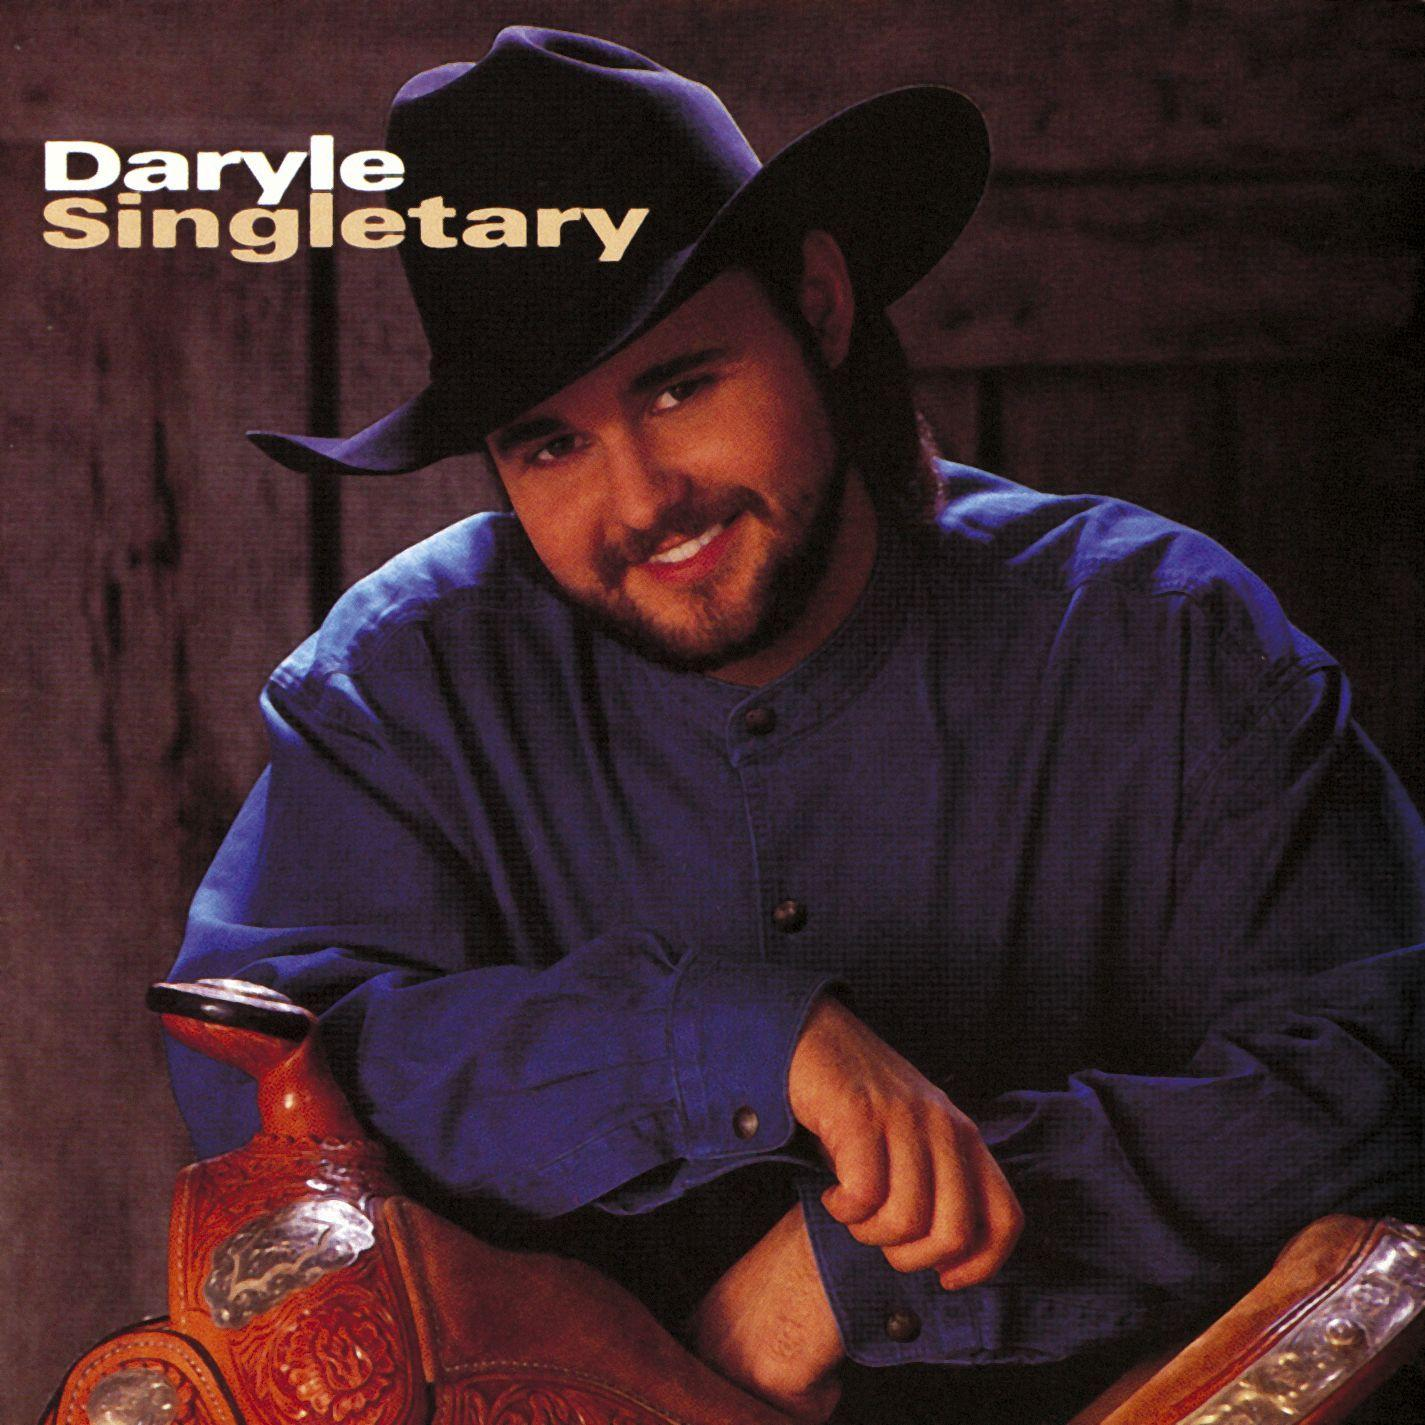 Daryle Singletary | U.S. News in Photos | Claudia's Images